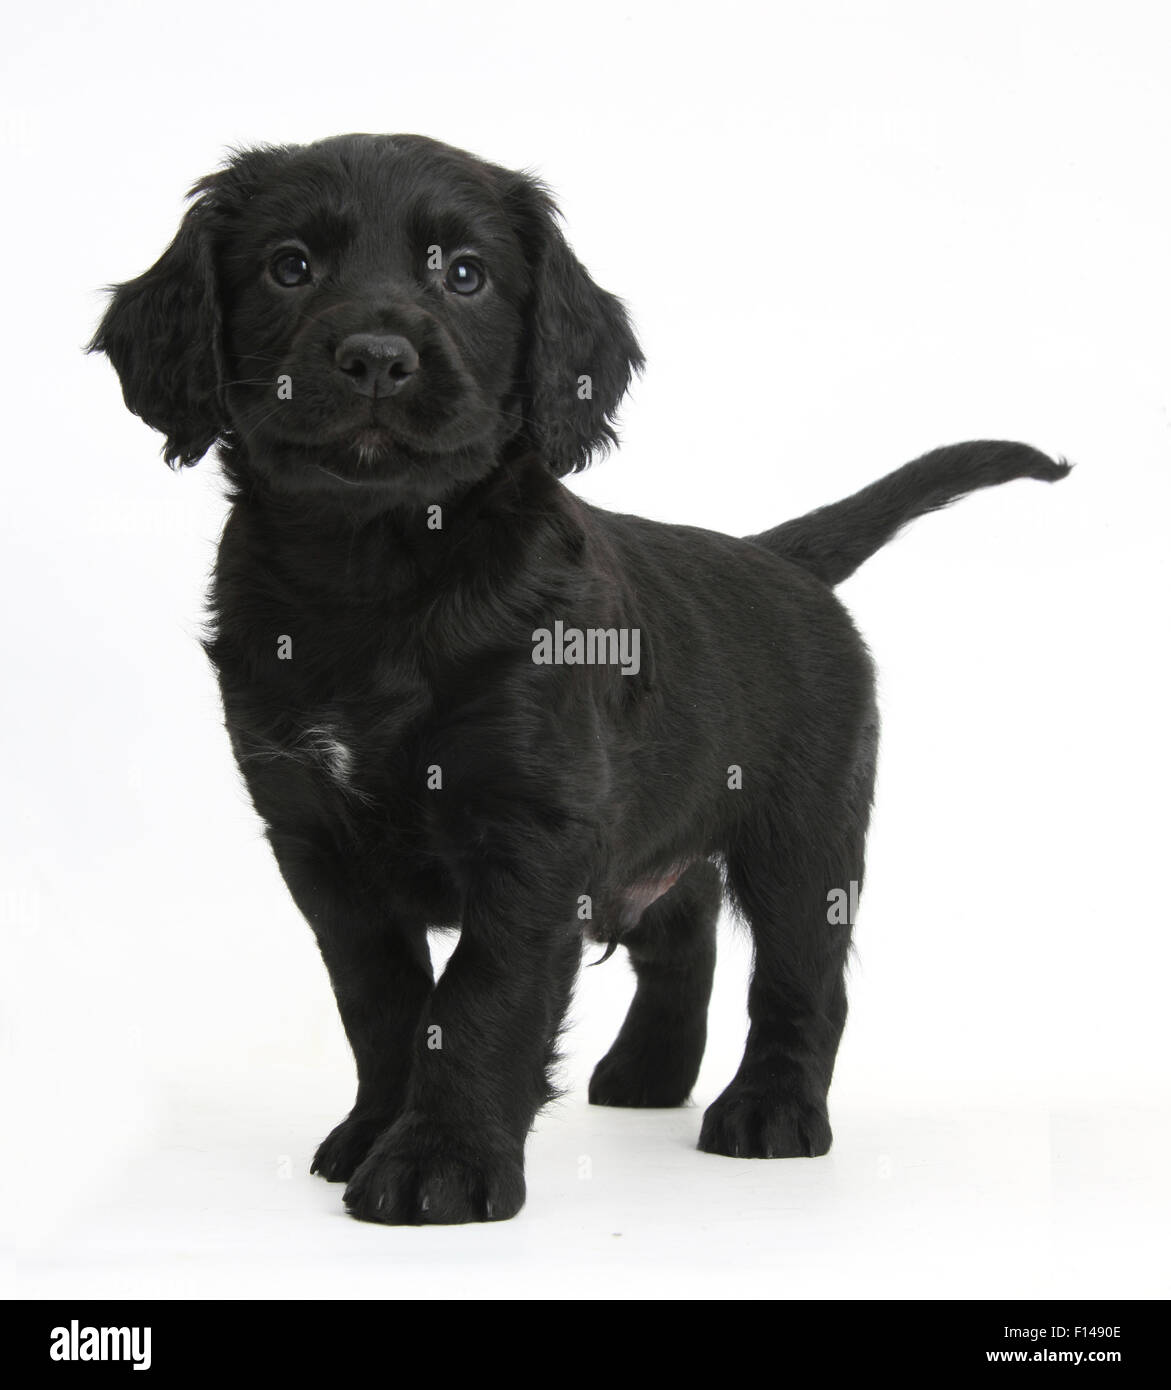 Black Cocker Spaniel puppy standing, against white background - Stock Image